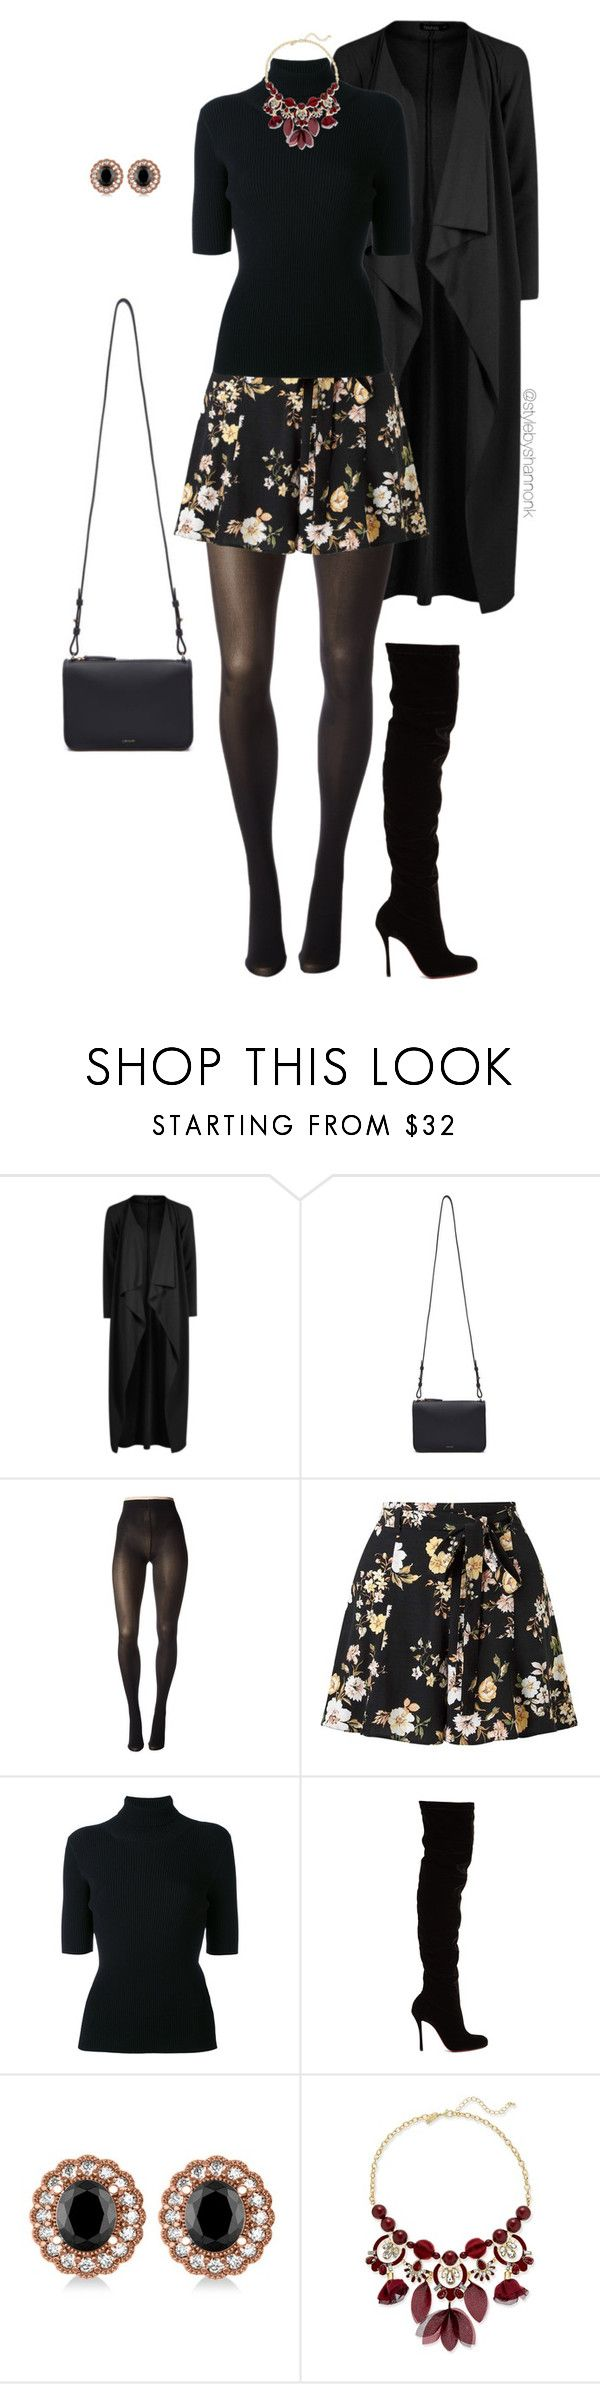 """""""Dark Florals"""" by stylebyshannonk on Polyvore featuring Boohoo, Cuero&Mør, Pretty Polly, Miss Selfridge, Valentino, Christian Louboutin, Allurez and INC International Concepts"""